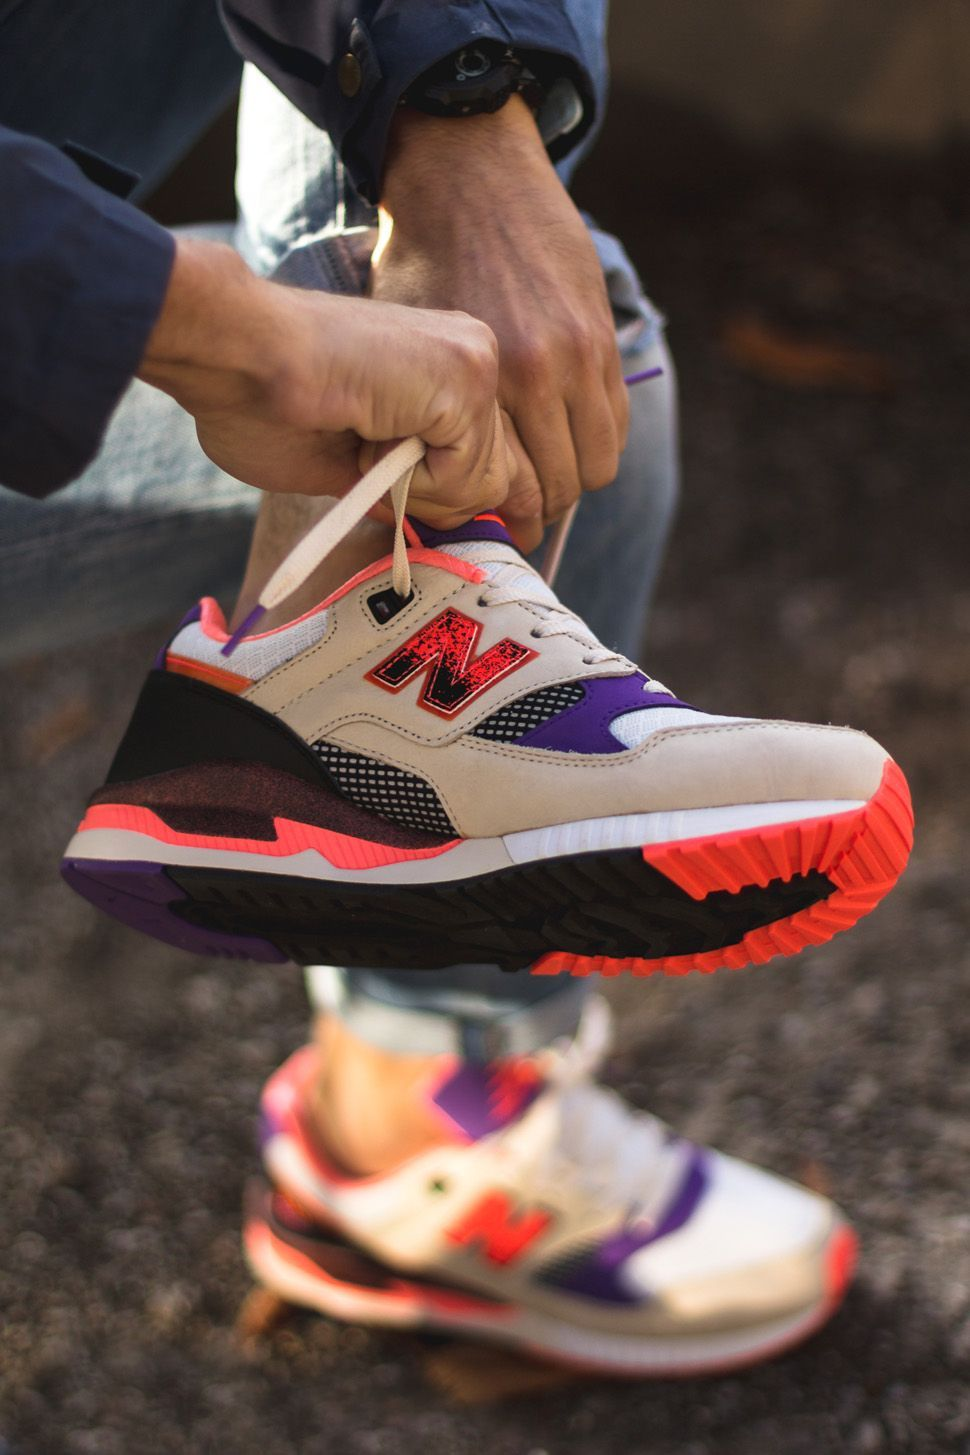 Bringing back 90 s retro sport with the West NYC x New Balance 530 Lava   collab  newbalance  streetstyle a9d7049499